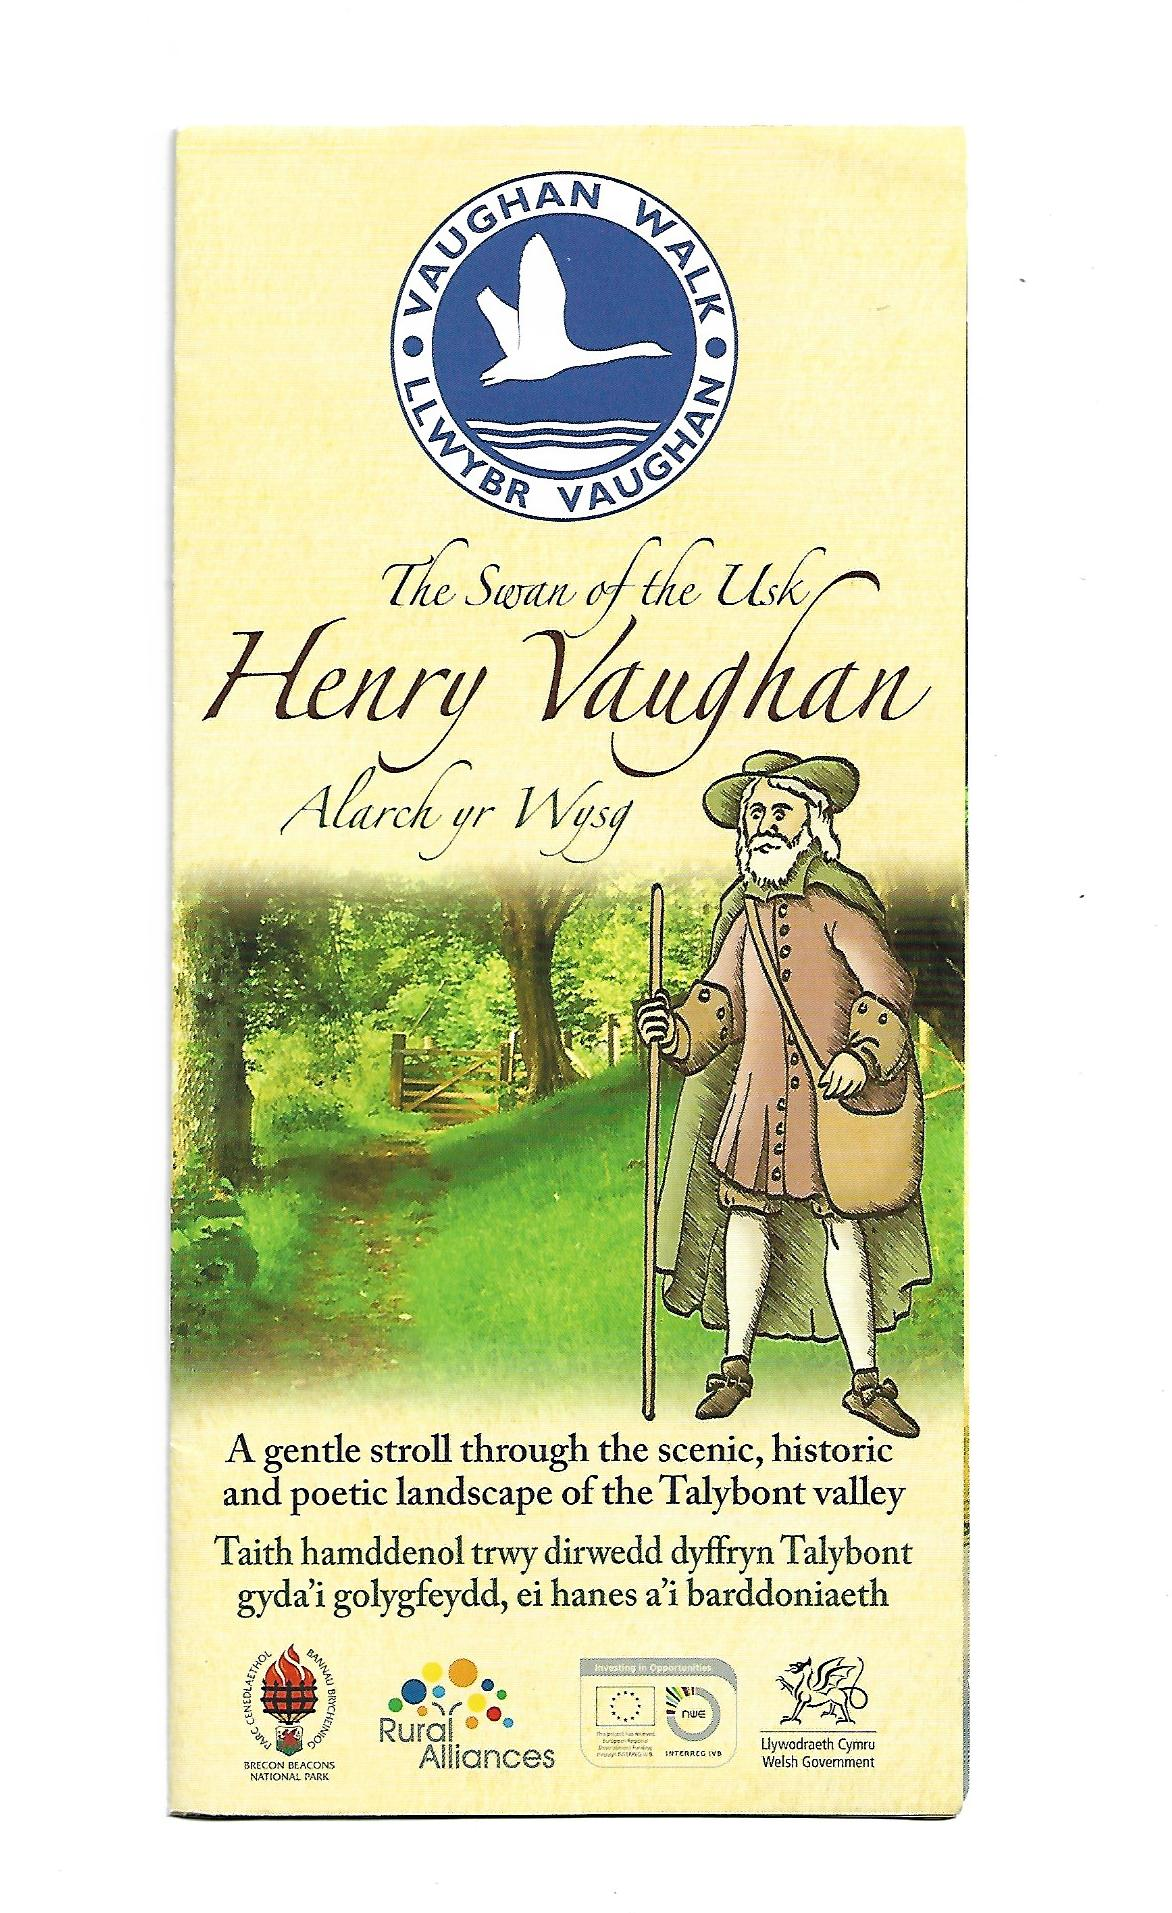 The well signed Henry Vaughan Wak